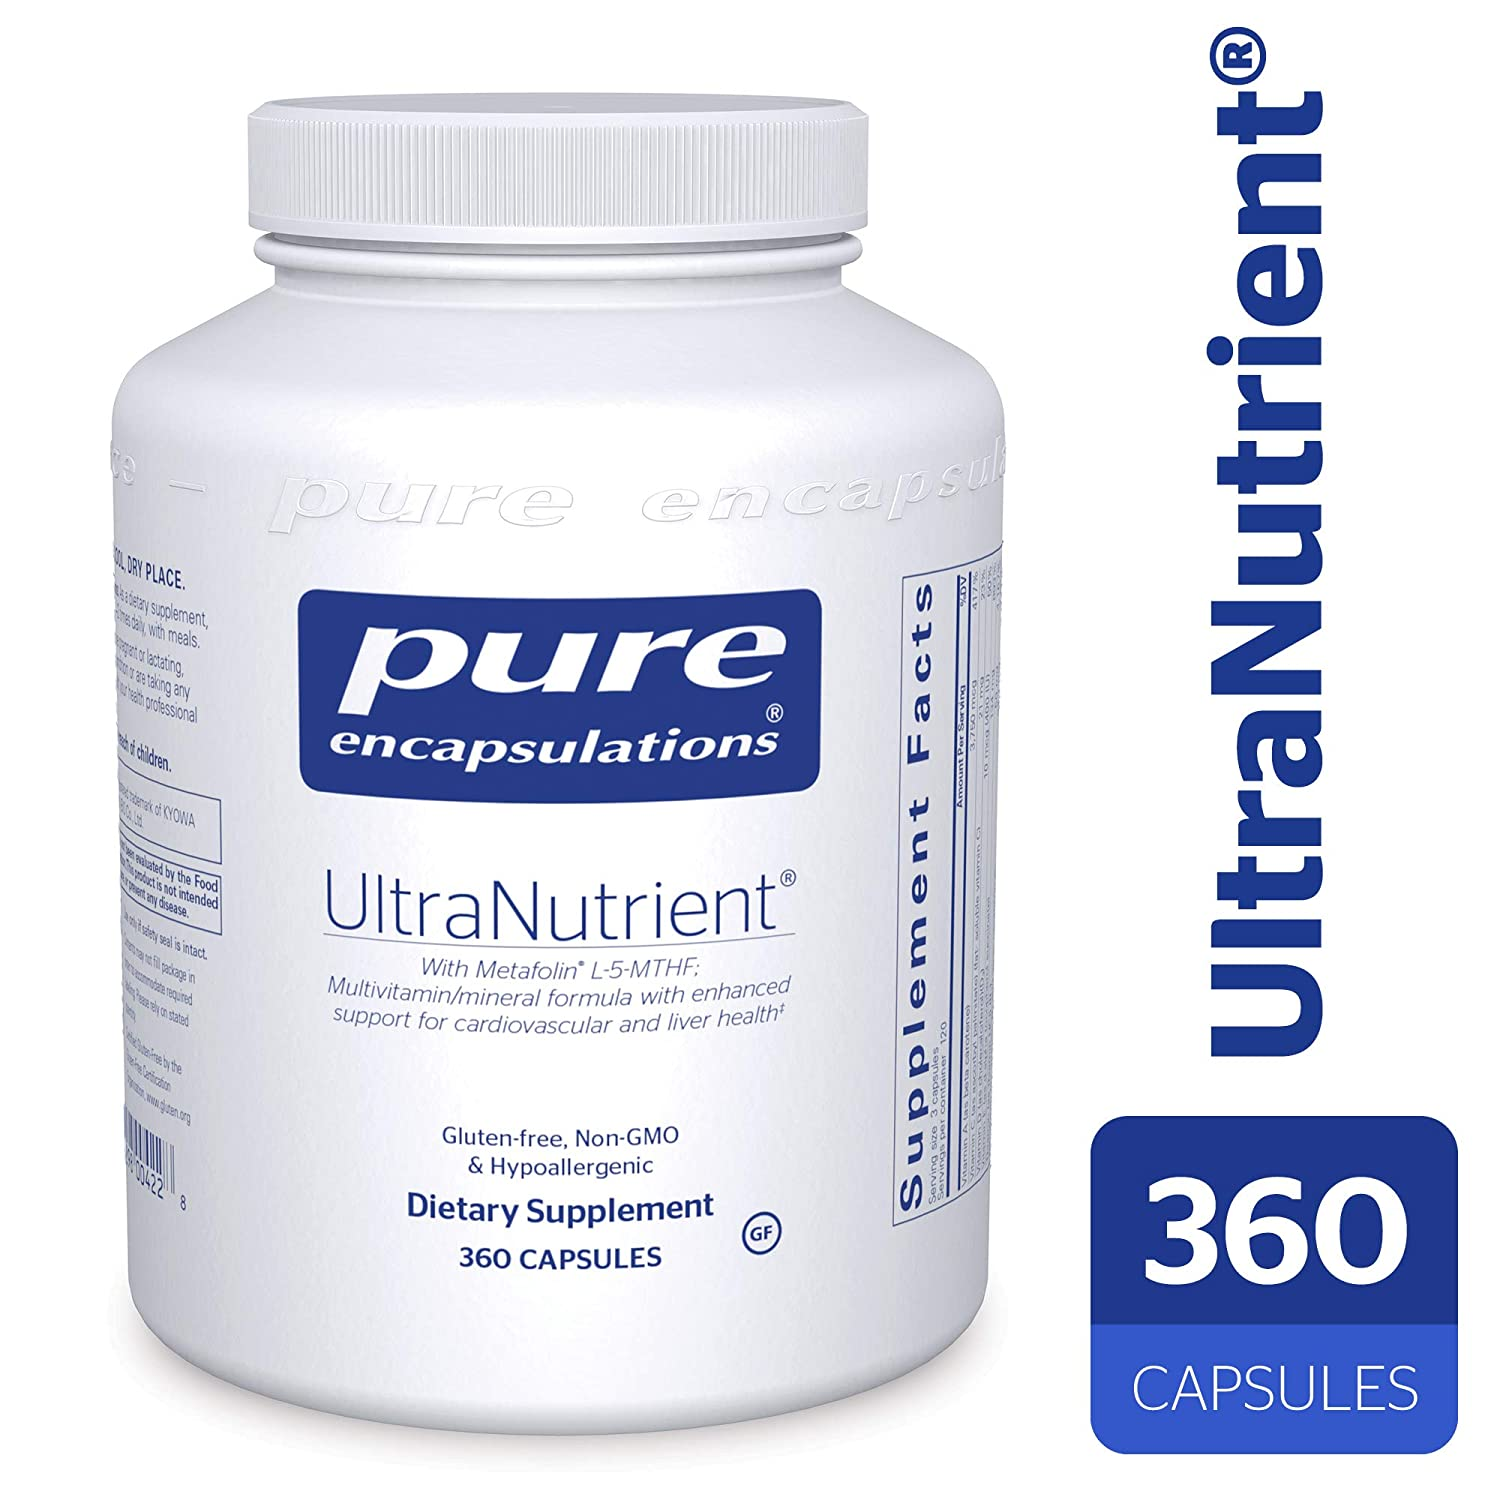 Pure Encapsulations – UltraNutrient – Hypoallergenic Multivitamin Mineral Complex with Advanced Antioxidants – 360 Capsules